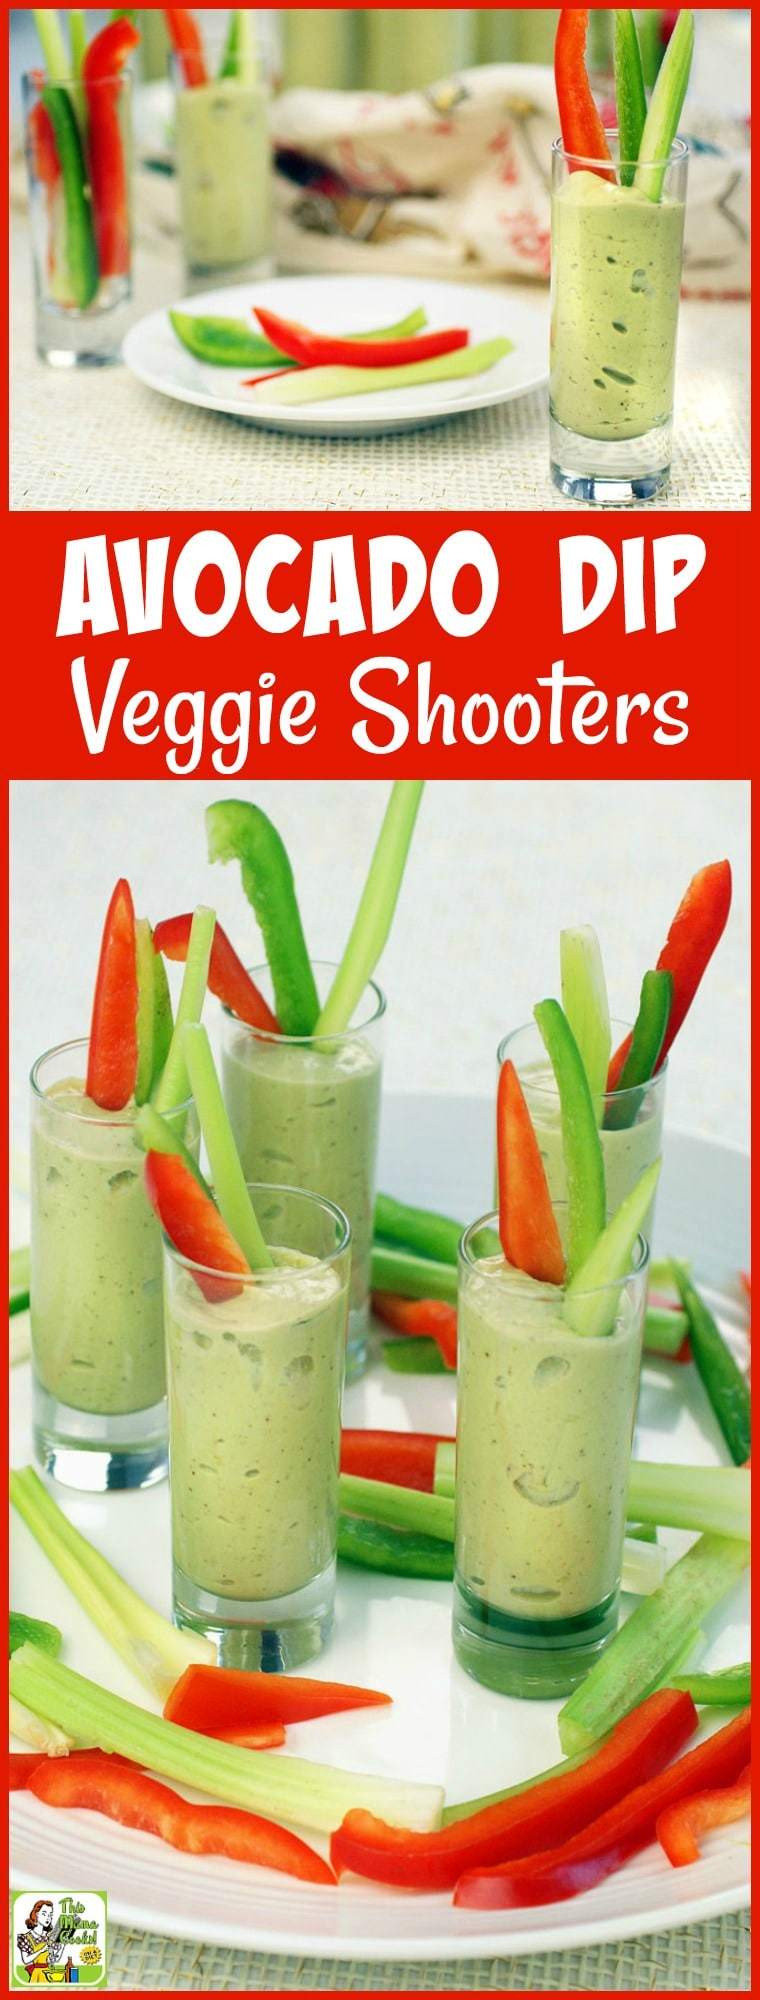 Want to make some healthy green dip recipes for St. Patrick's Day? Then make up a batch of Avocado Dip Veggie Shooters. This healthy party appetizer is made with yogurt and avocados. Served in shot glasses with vegetable crudites, it's the perfect party snack for your guests to nosh on while they mingle. #avocado #dip #appetizers #partyfood #healthy #healthyappetizers #healthyfood #healthyrecipes #avocados #vegetables #stpatricksday #green #snack